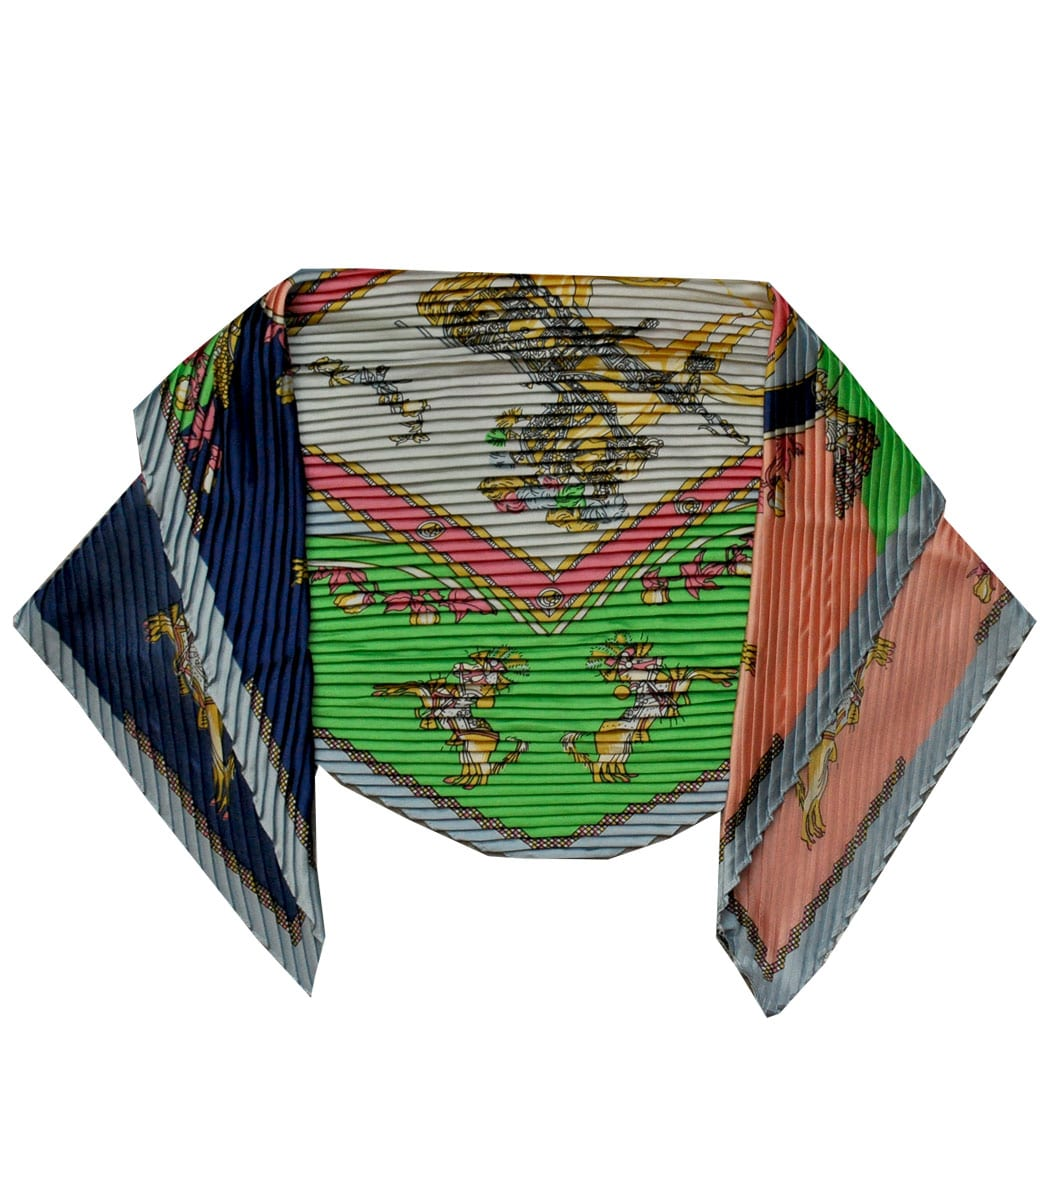 Pleated hermes inspired scarf